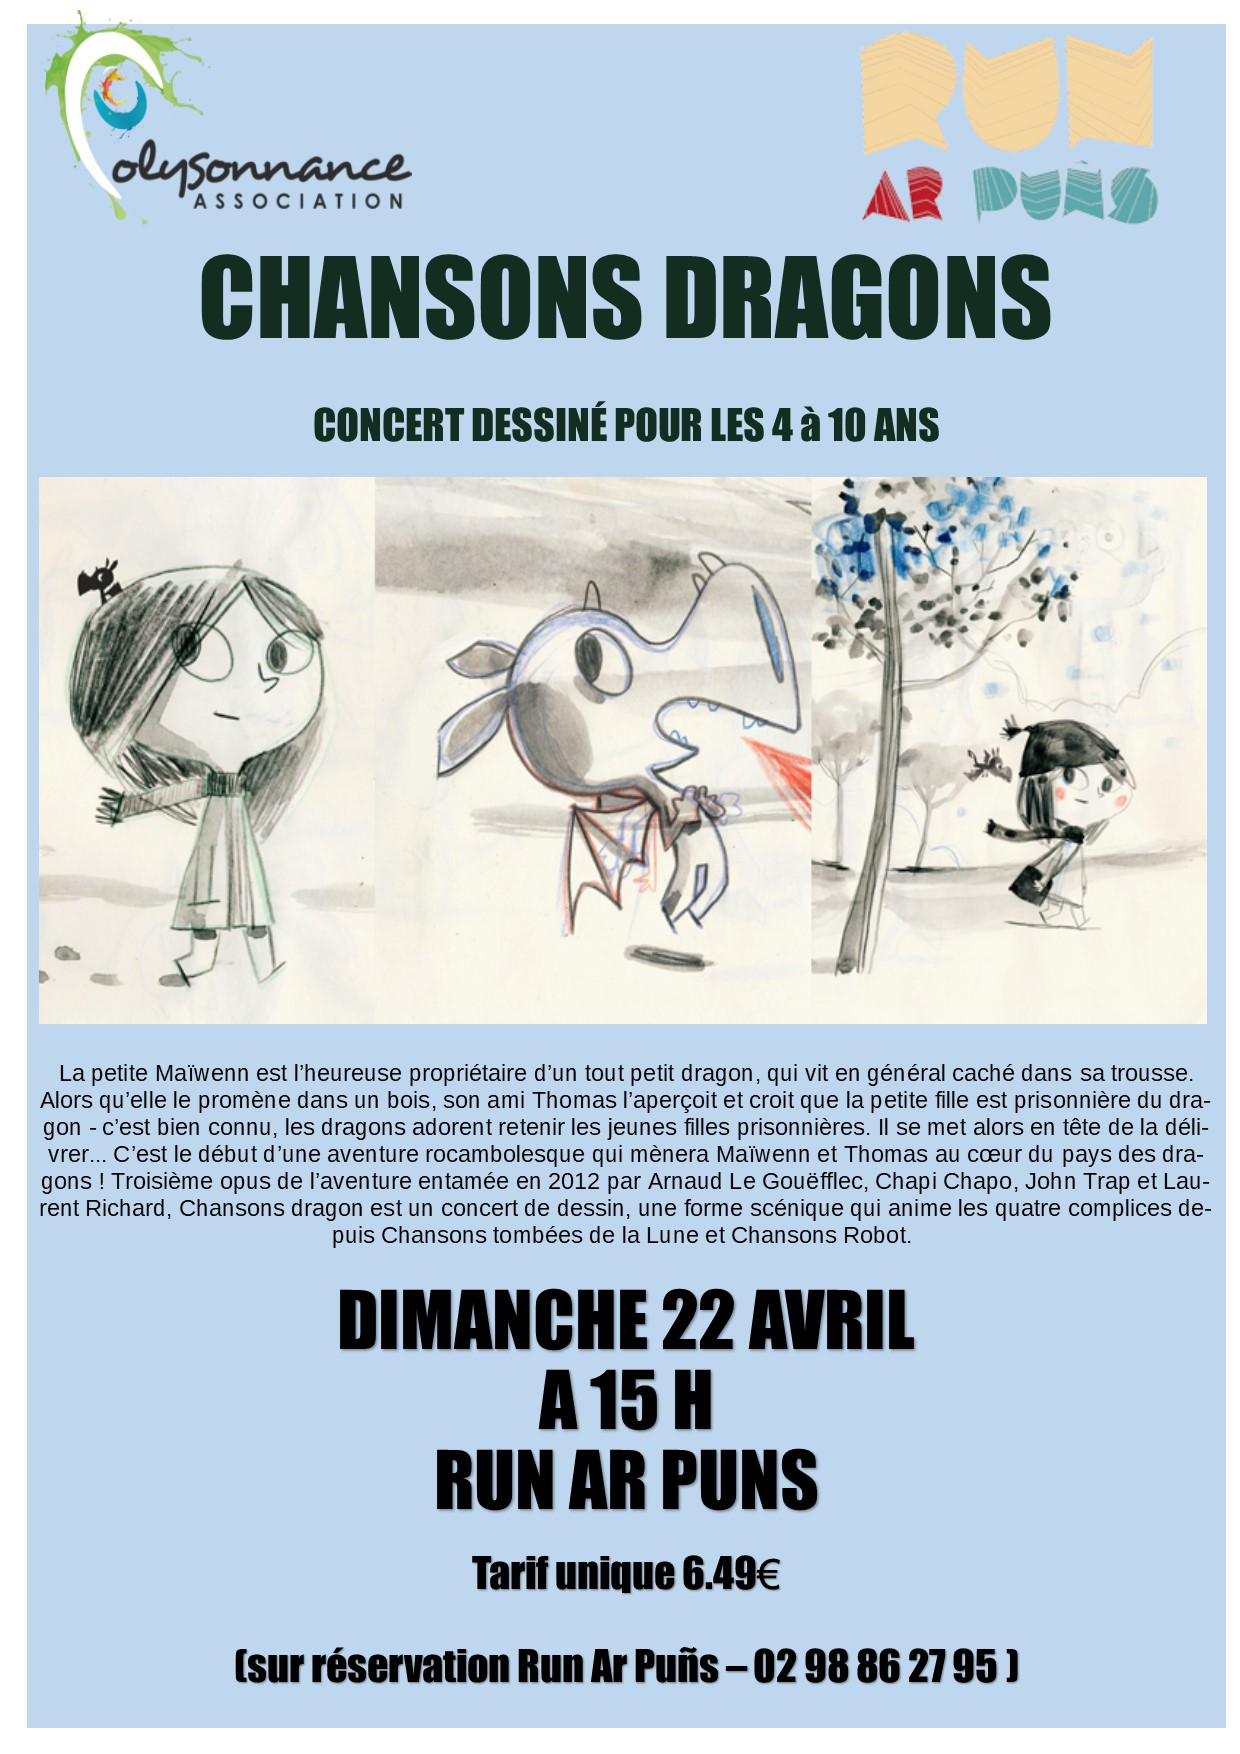 CONCERT « CHANSONS DRAGONS » DIMANCHE 22 AVRIL 15 HEURES